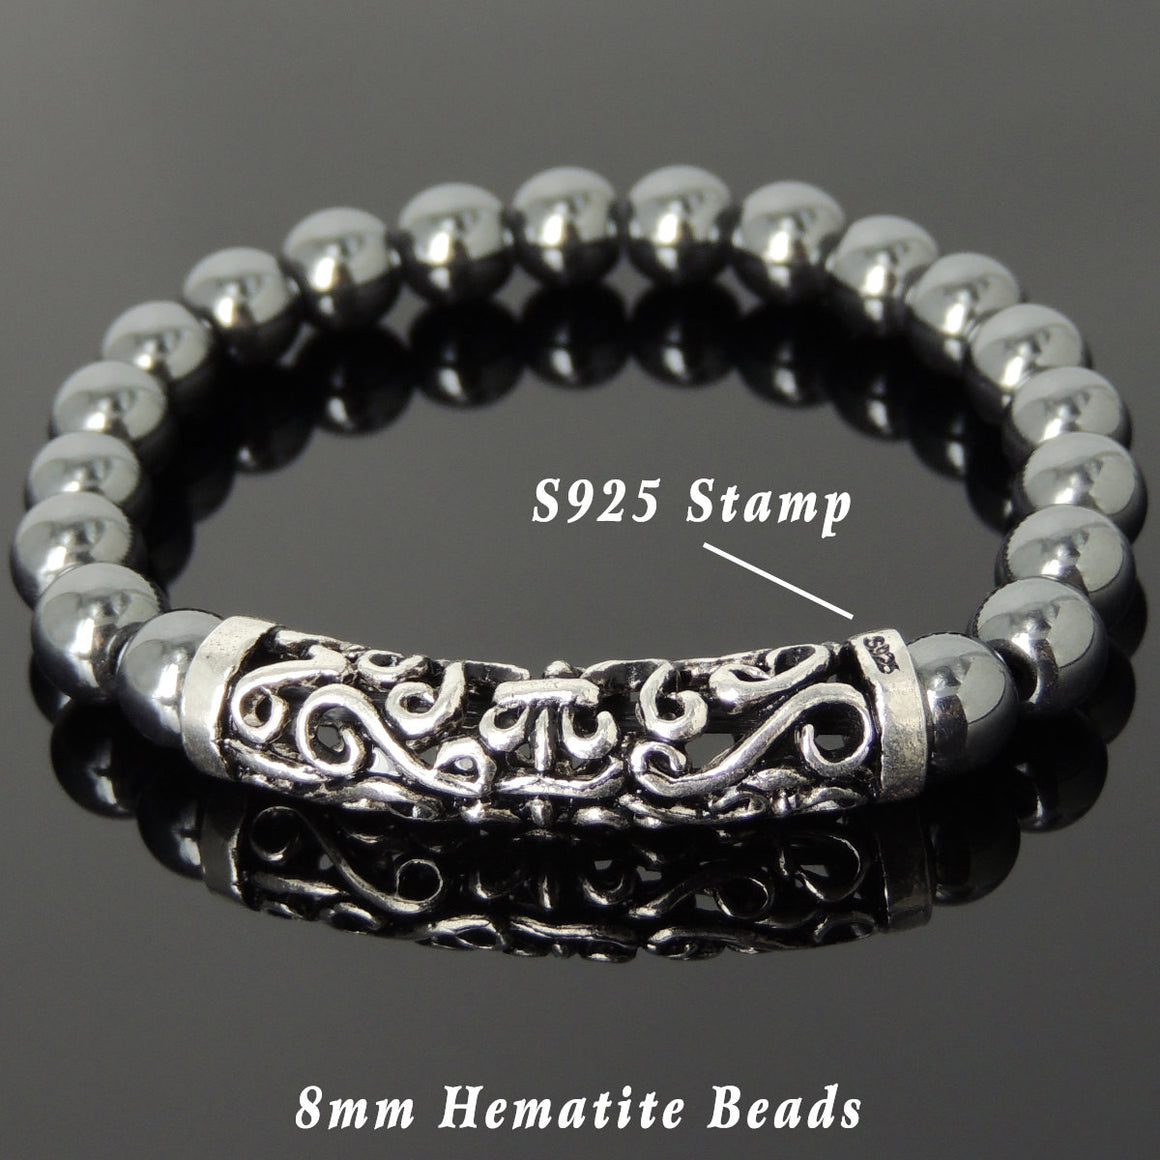 8mm Hematite Healing Gemstone Bracelet with S925 Sterling Silver Celtic Fleur de Lis Charm - Handmade by Gem & Silver BR978